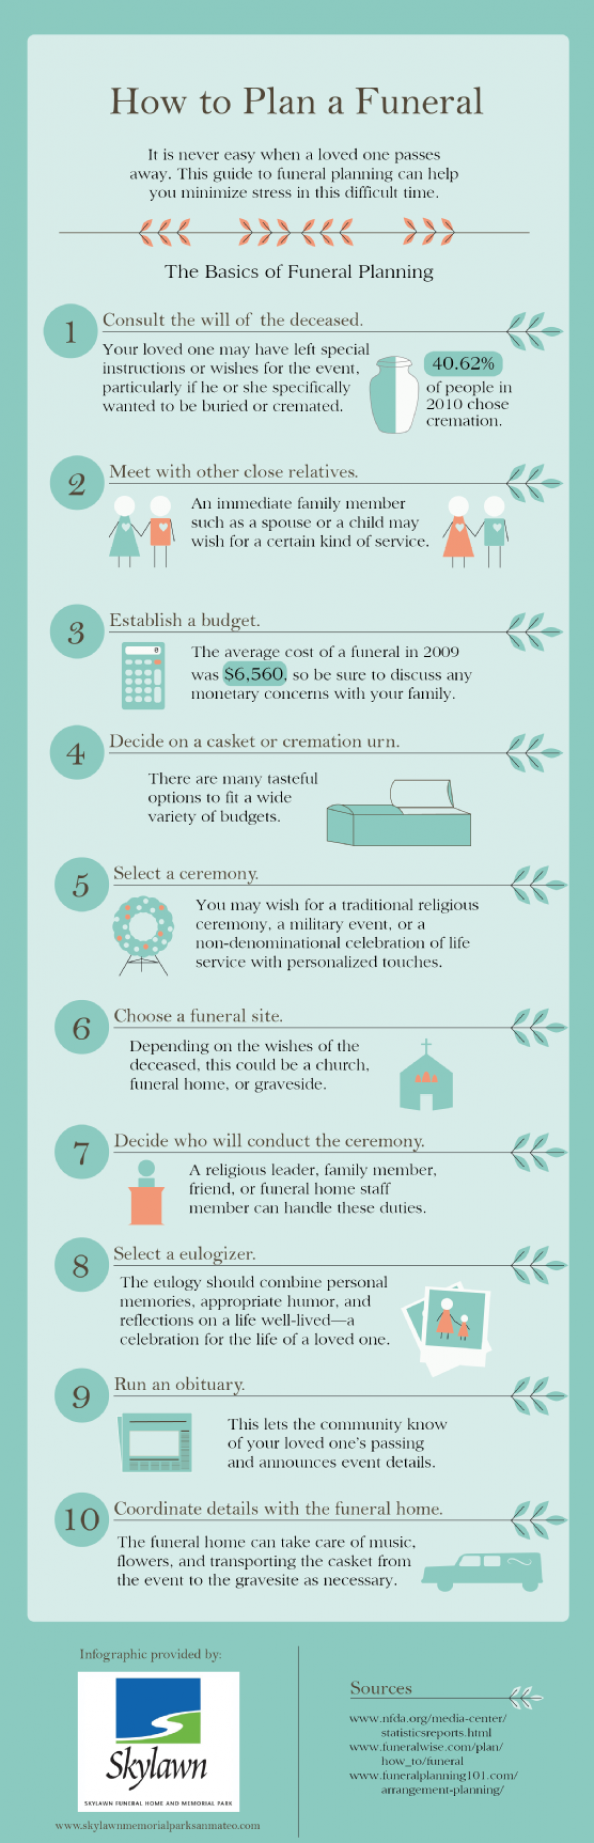 How to Plan a Funeral Infographic